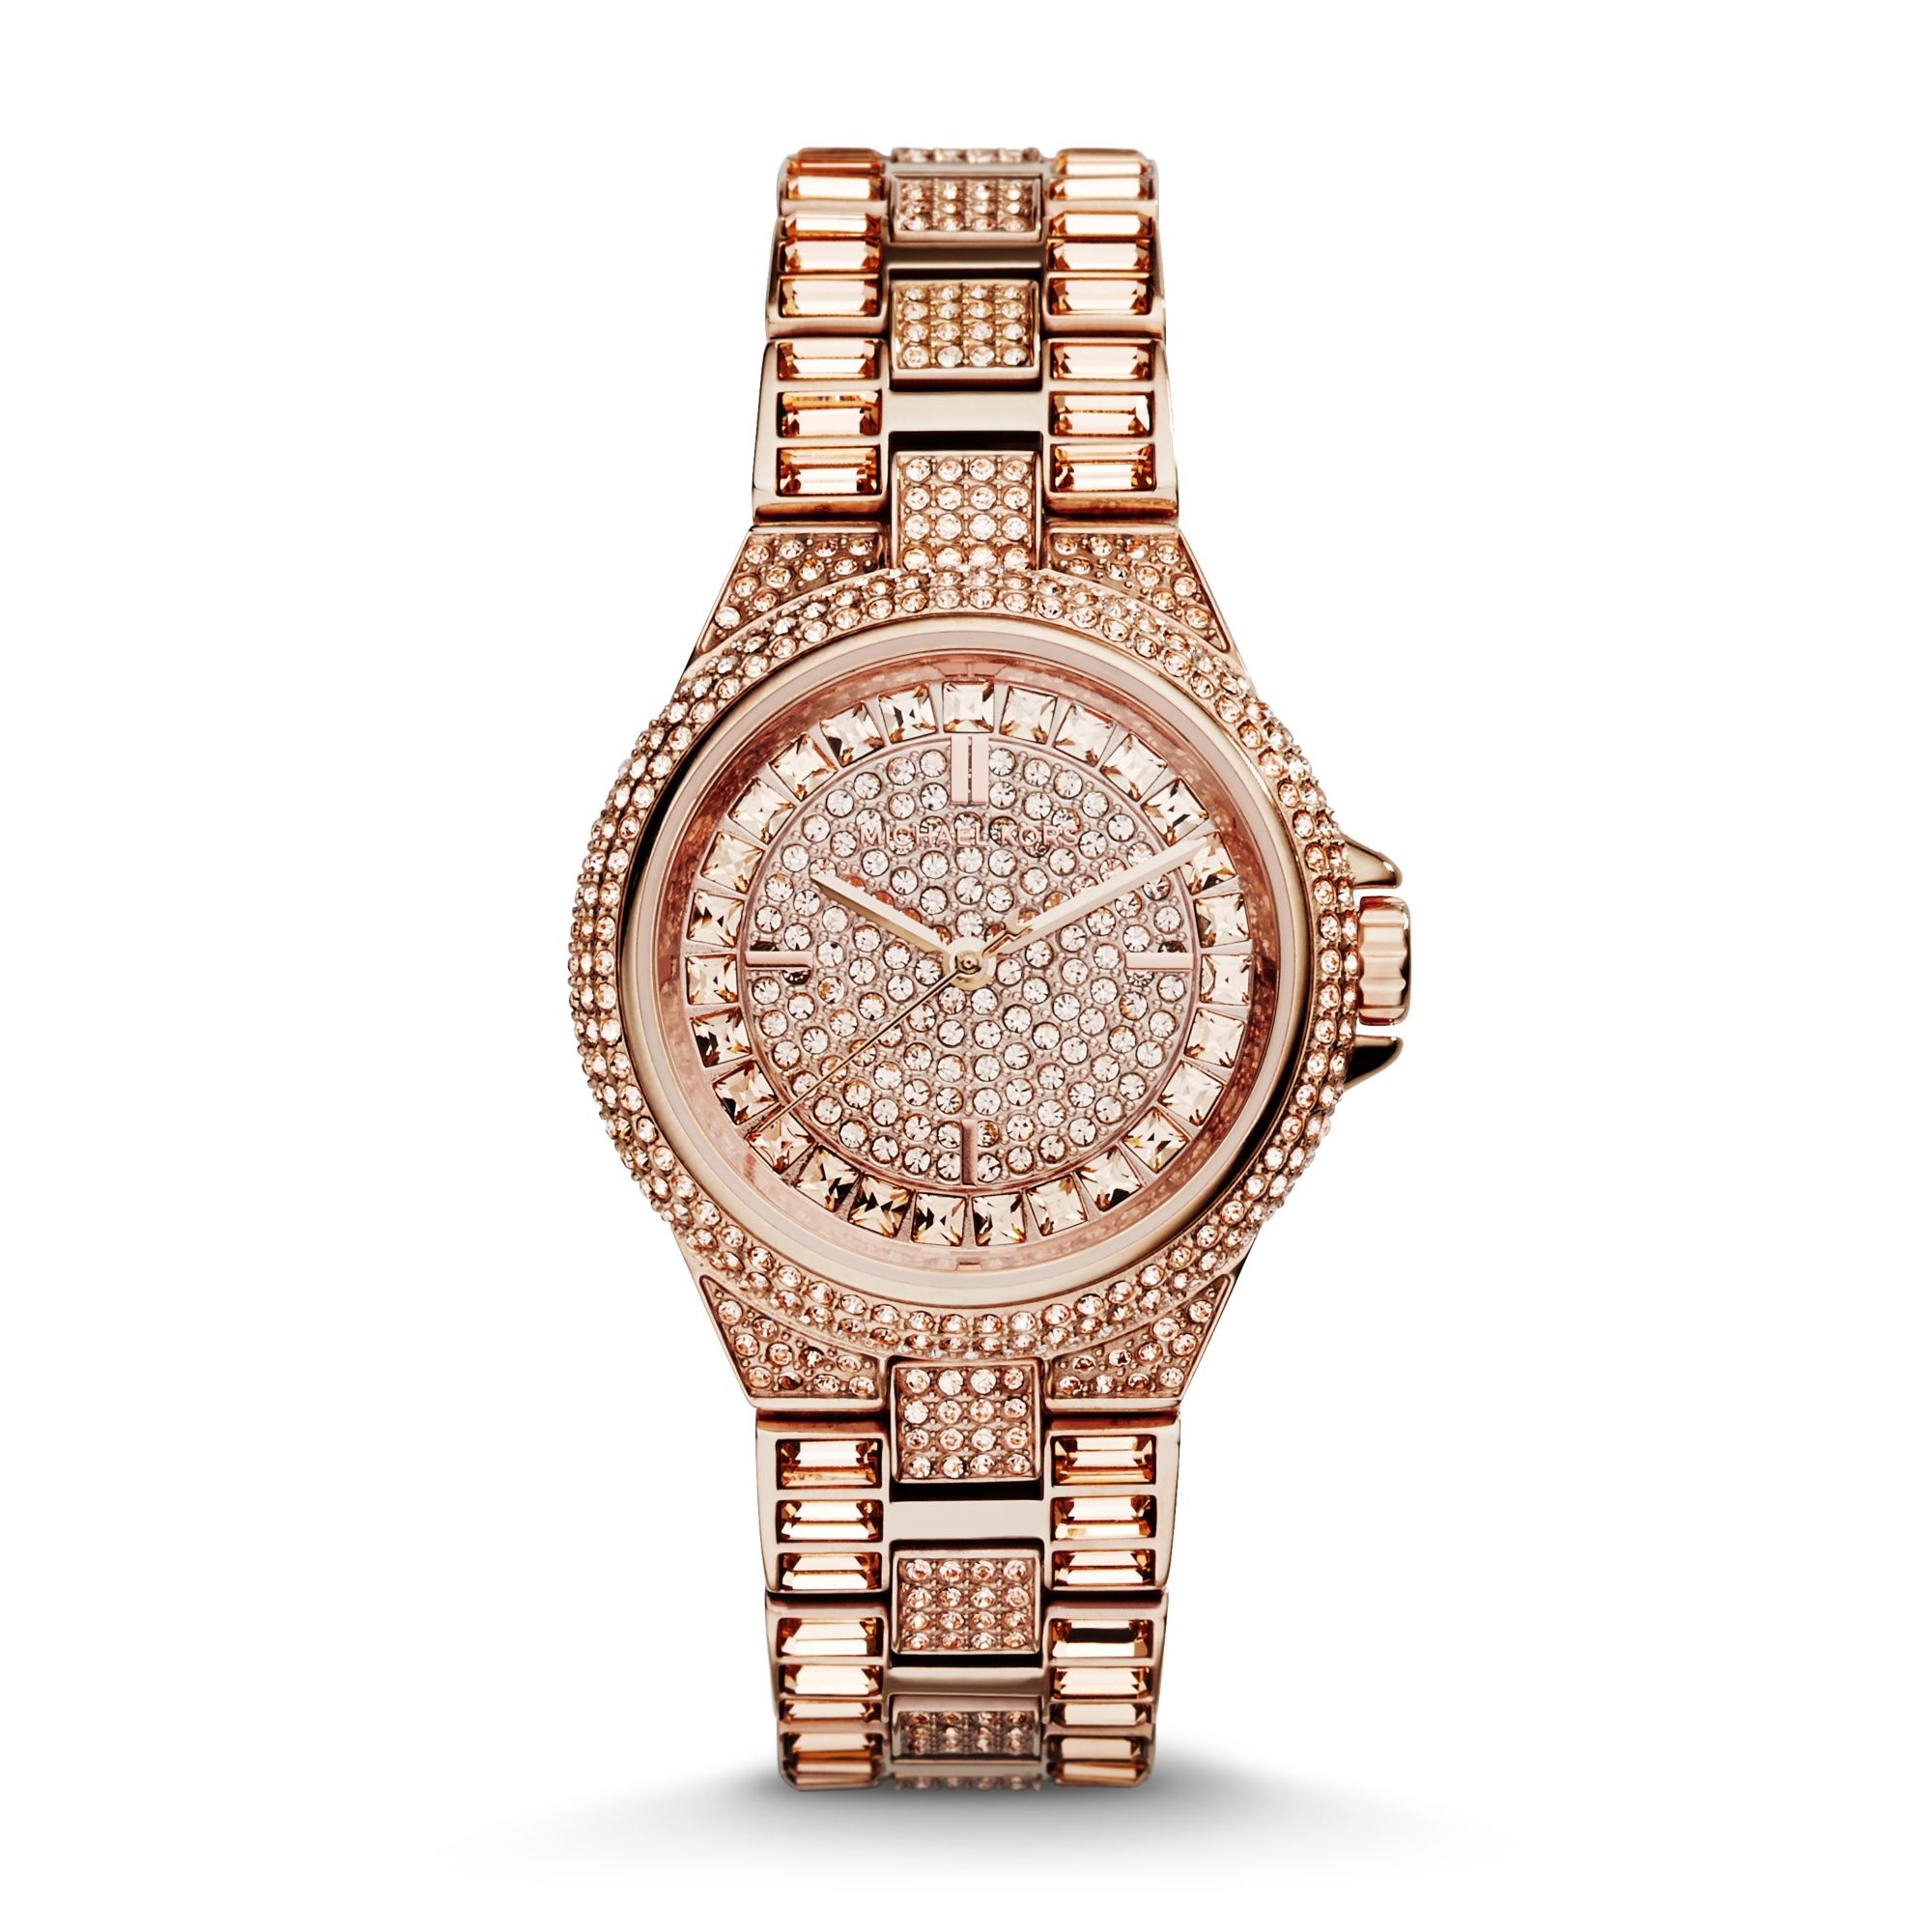 933b4c240a78 Lyst - Michael Kors Mini Camille Rose Gold-tone Watch in Pink